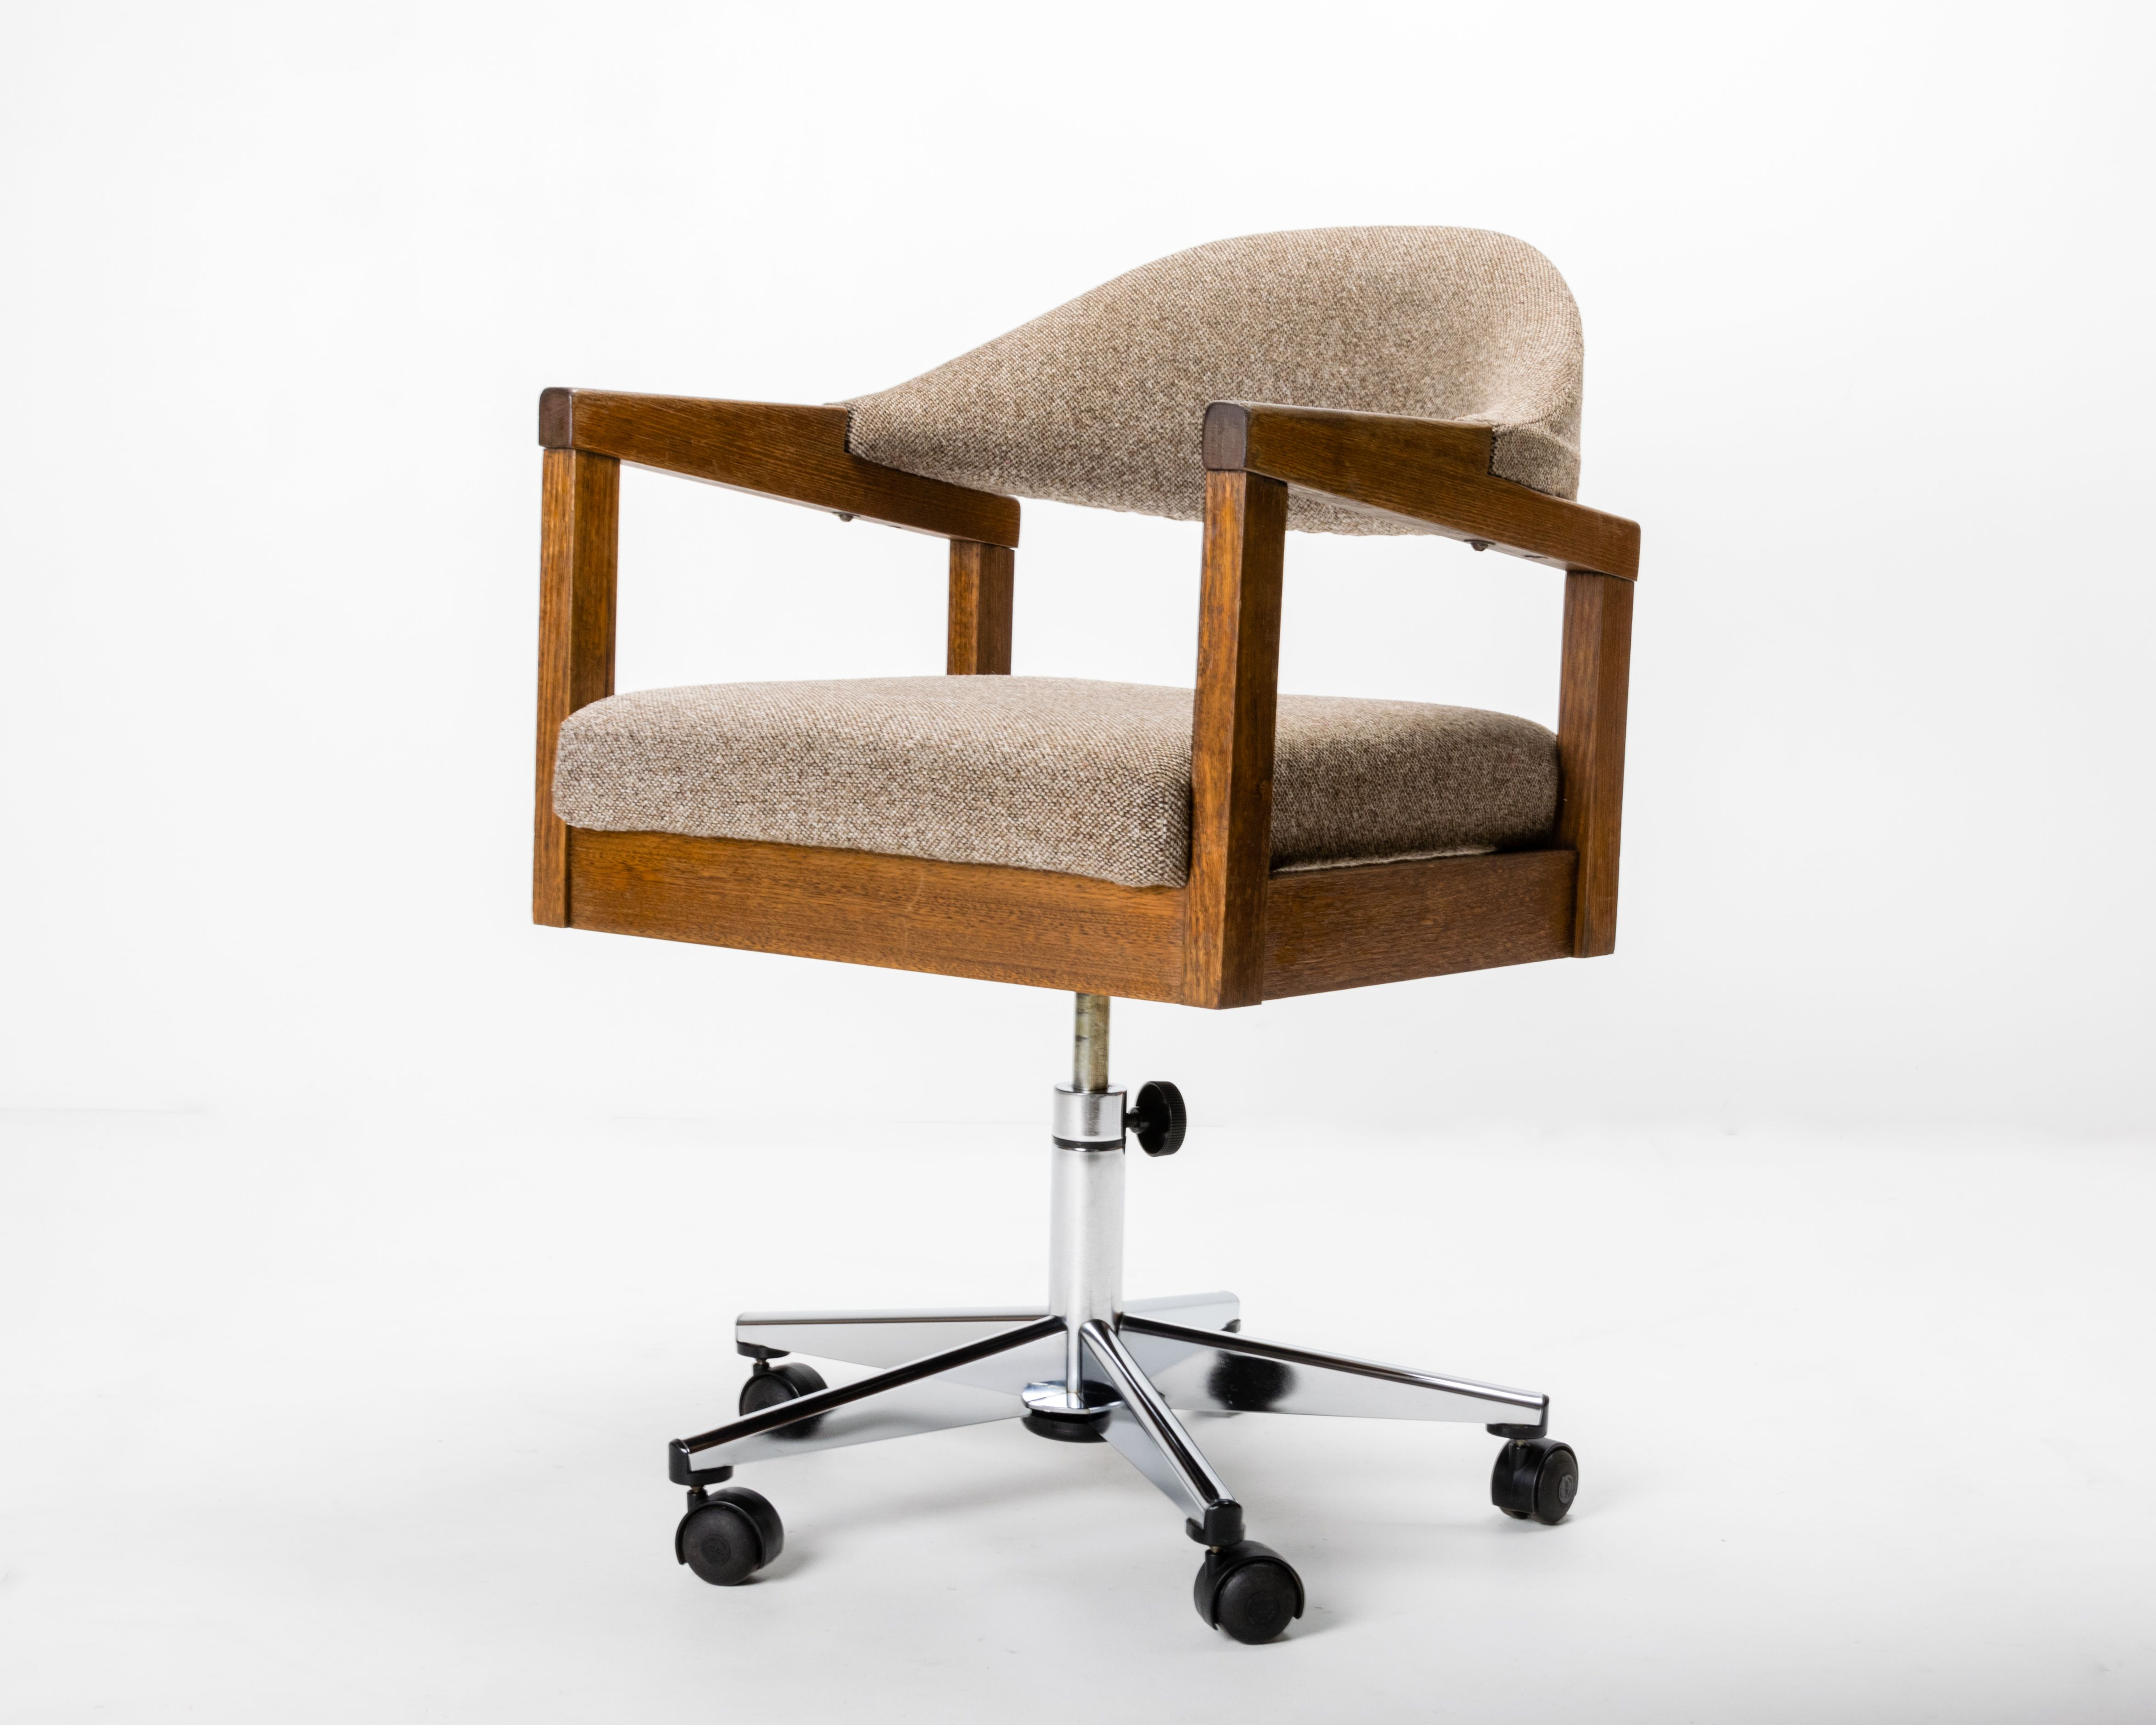 Handsome c1960s swivel armchair with a generous seat